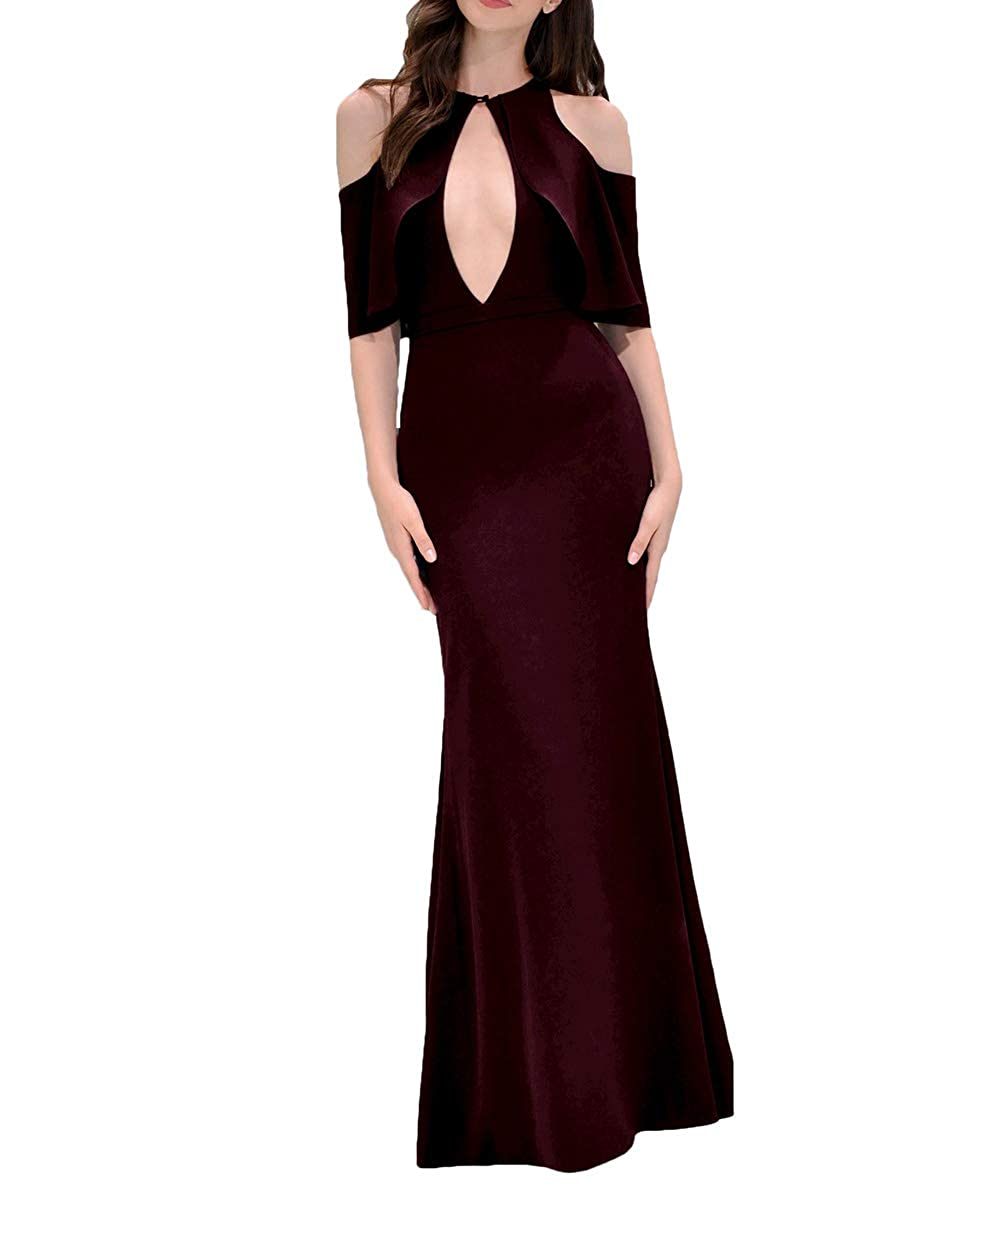 Dark Brown alilith.Z Sexy Keyhole Neck Mermaid Prom Dresses Ruffles Half Sleeves Formal Evening Dress Party Gowns for Women 2019 Long